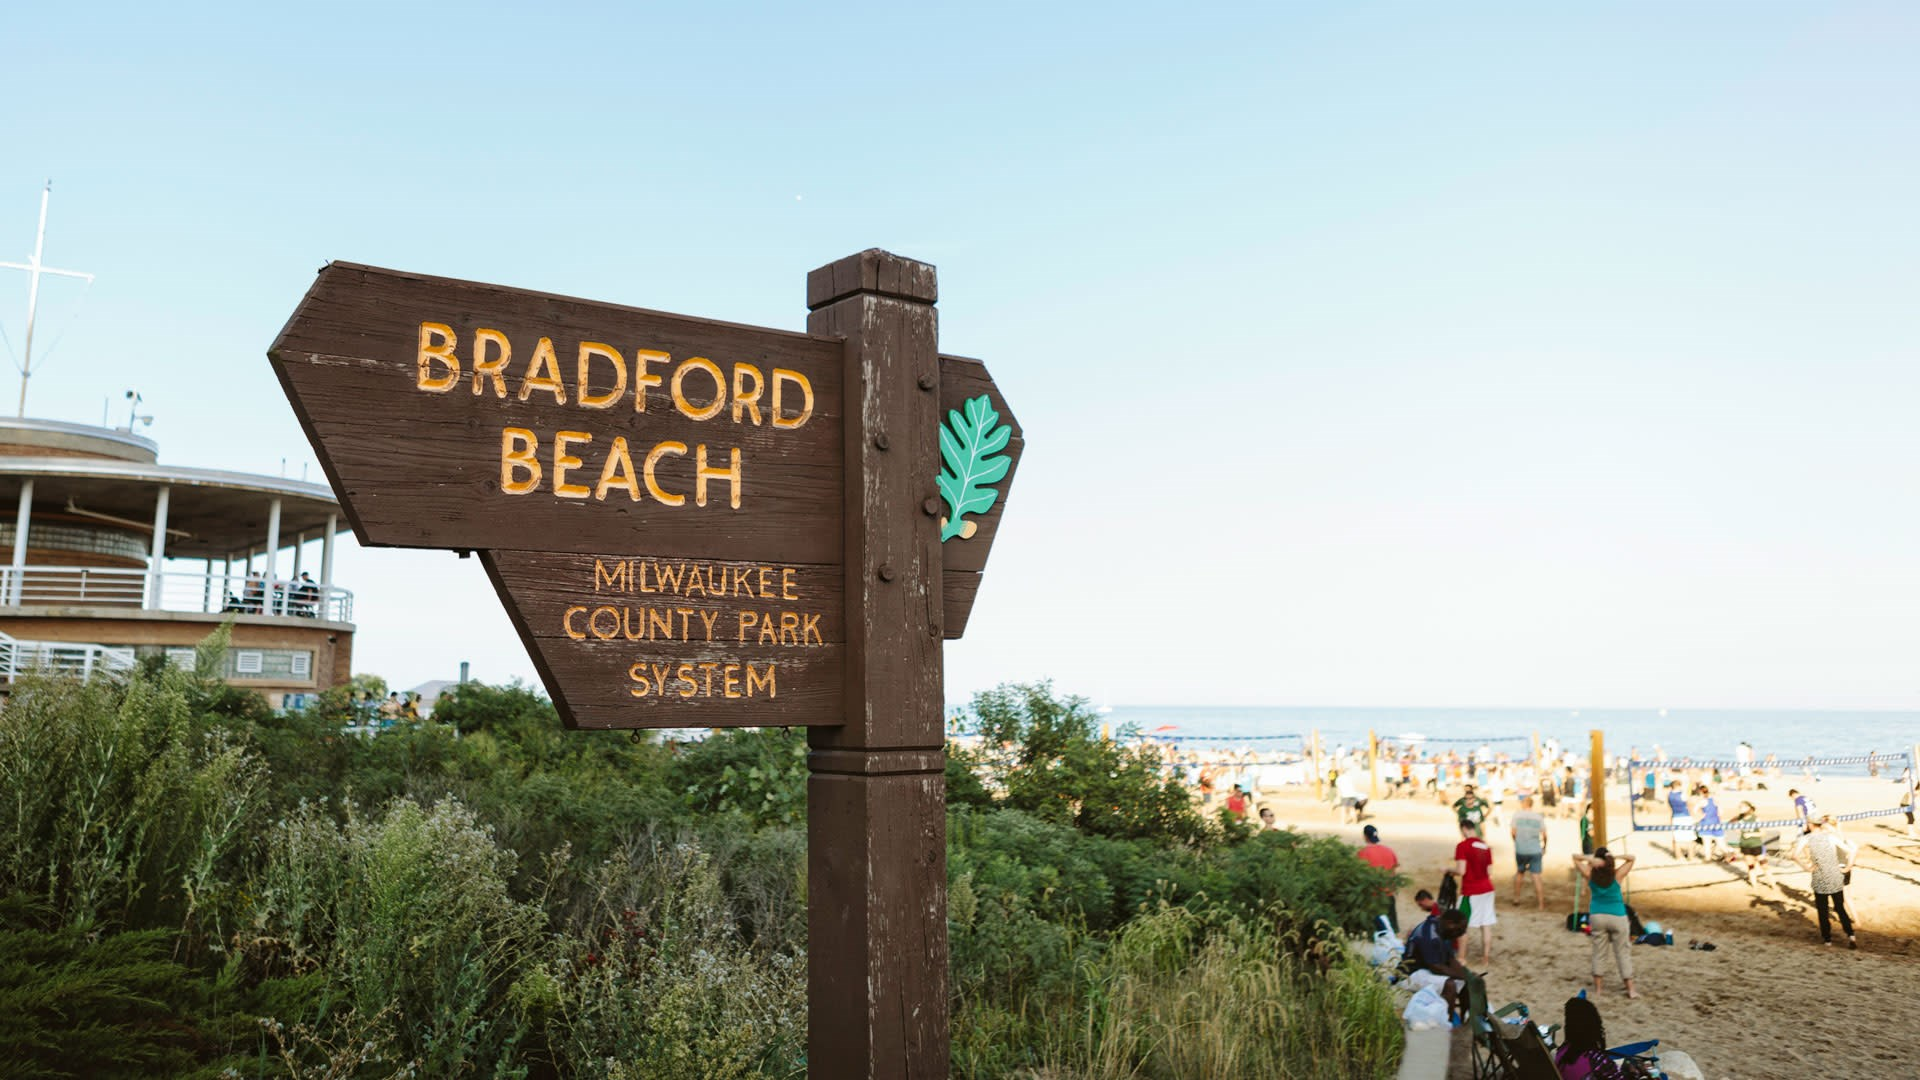 One of the Nation's top urban beaches